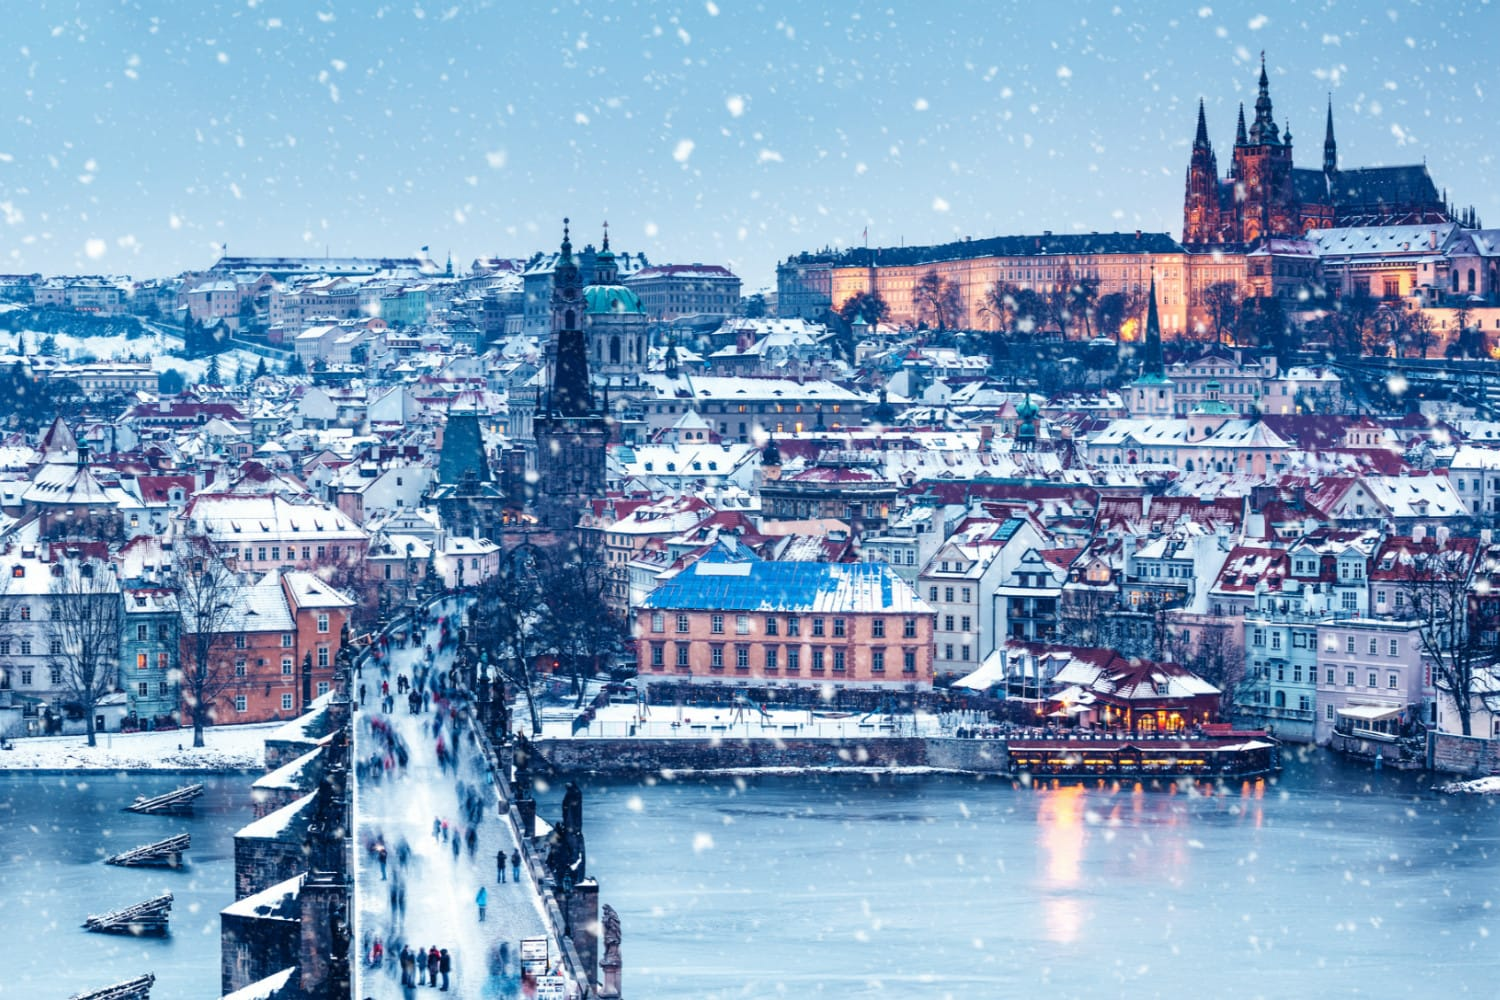 First snowfall of the 2018-19 season predicted for Monday in Prague